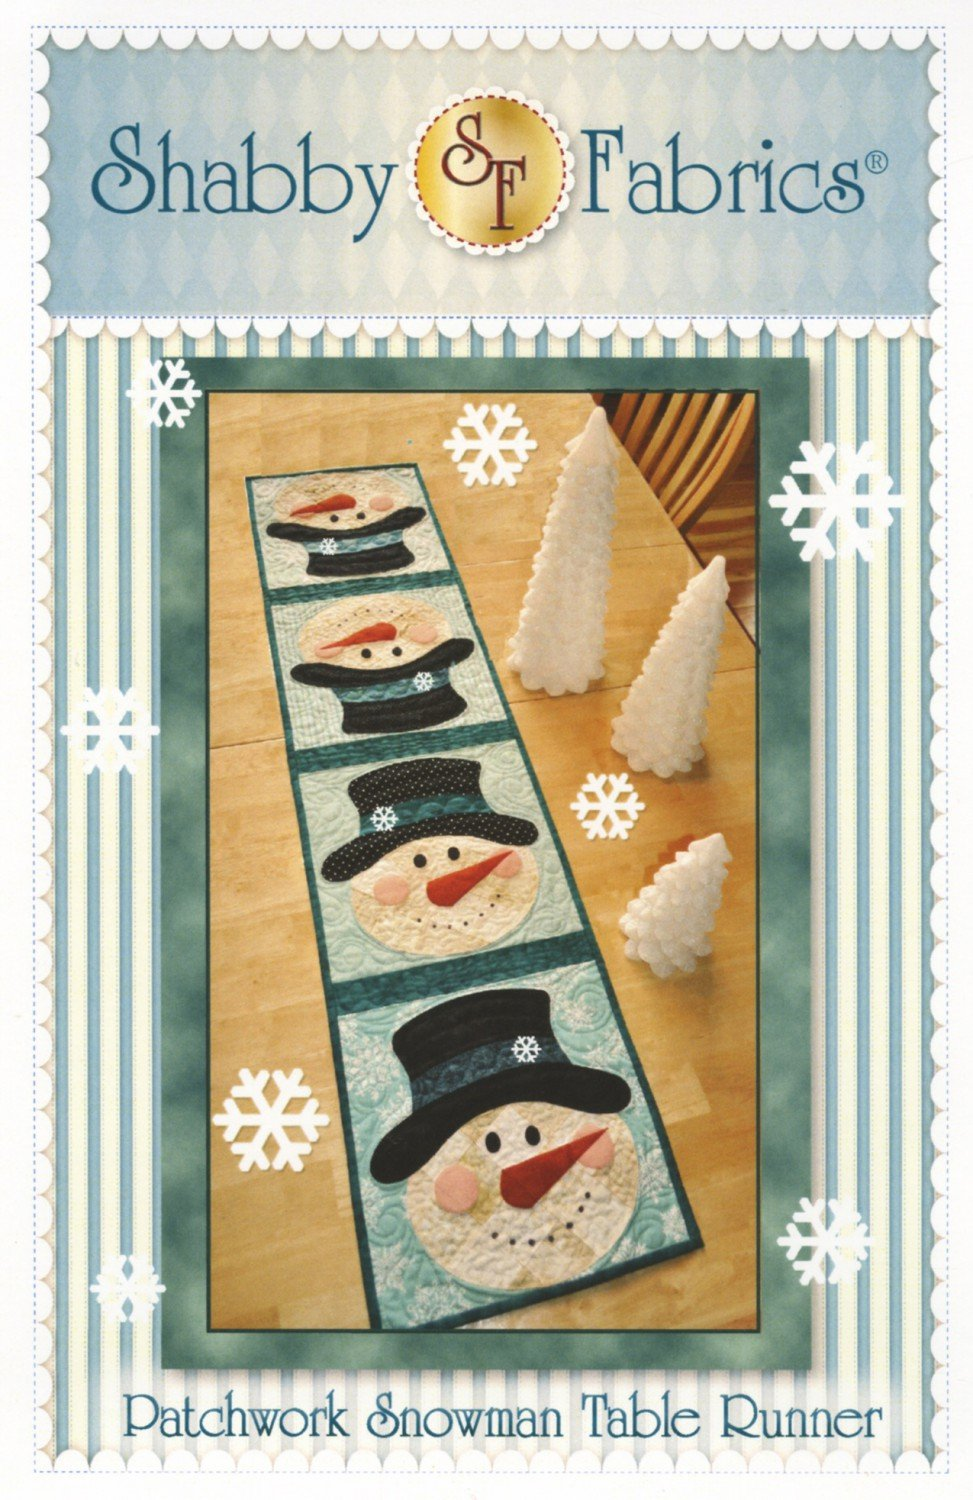 Patchwork Snowman Table Runner by Shappy Fabrics